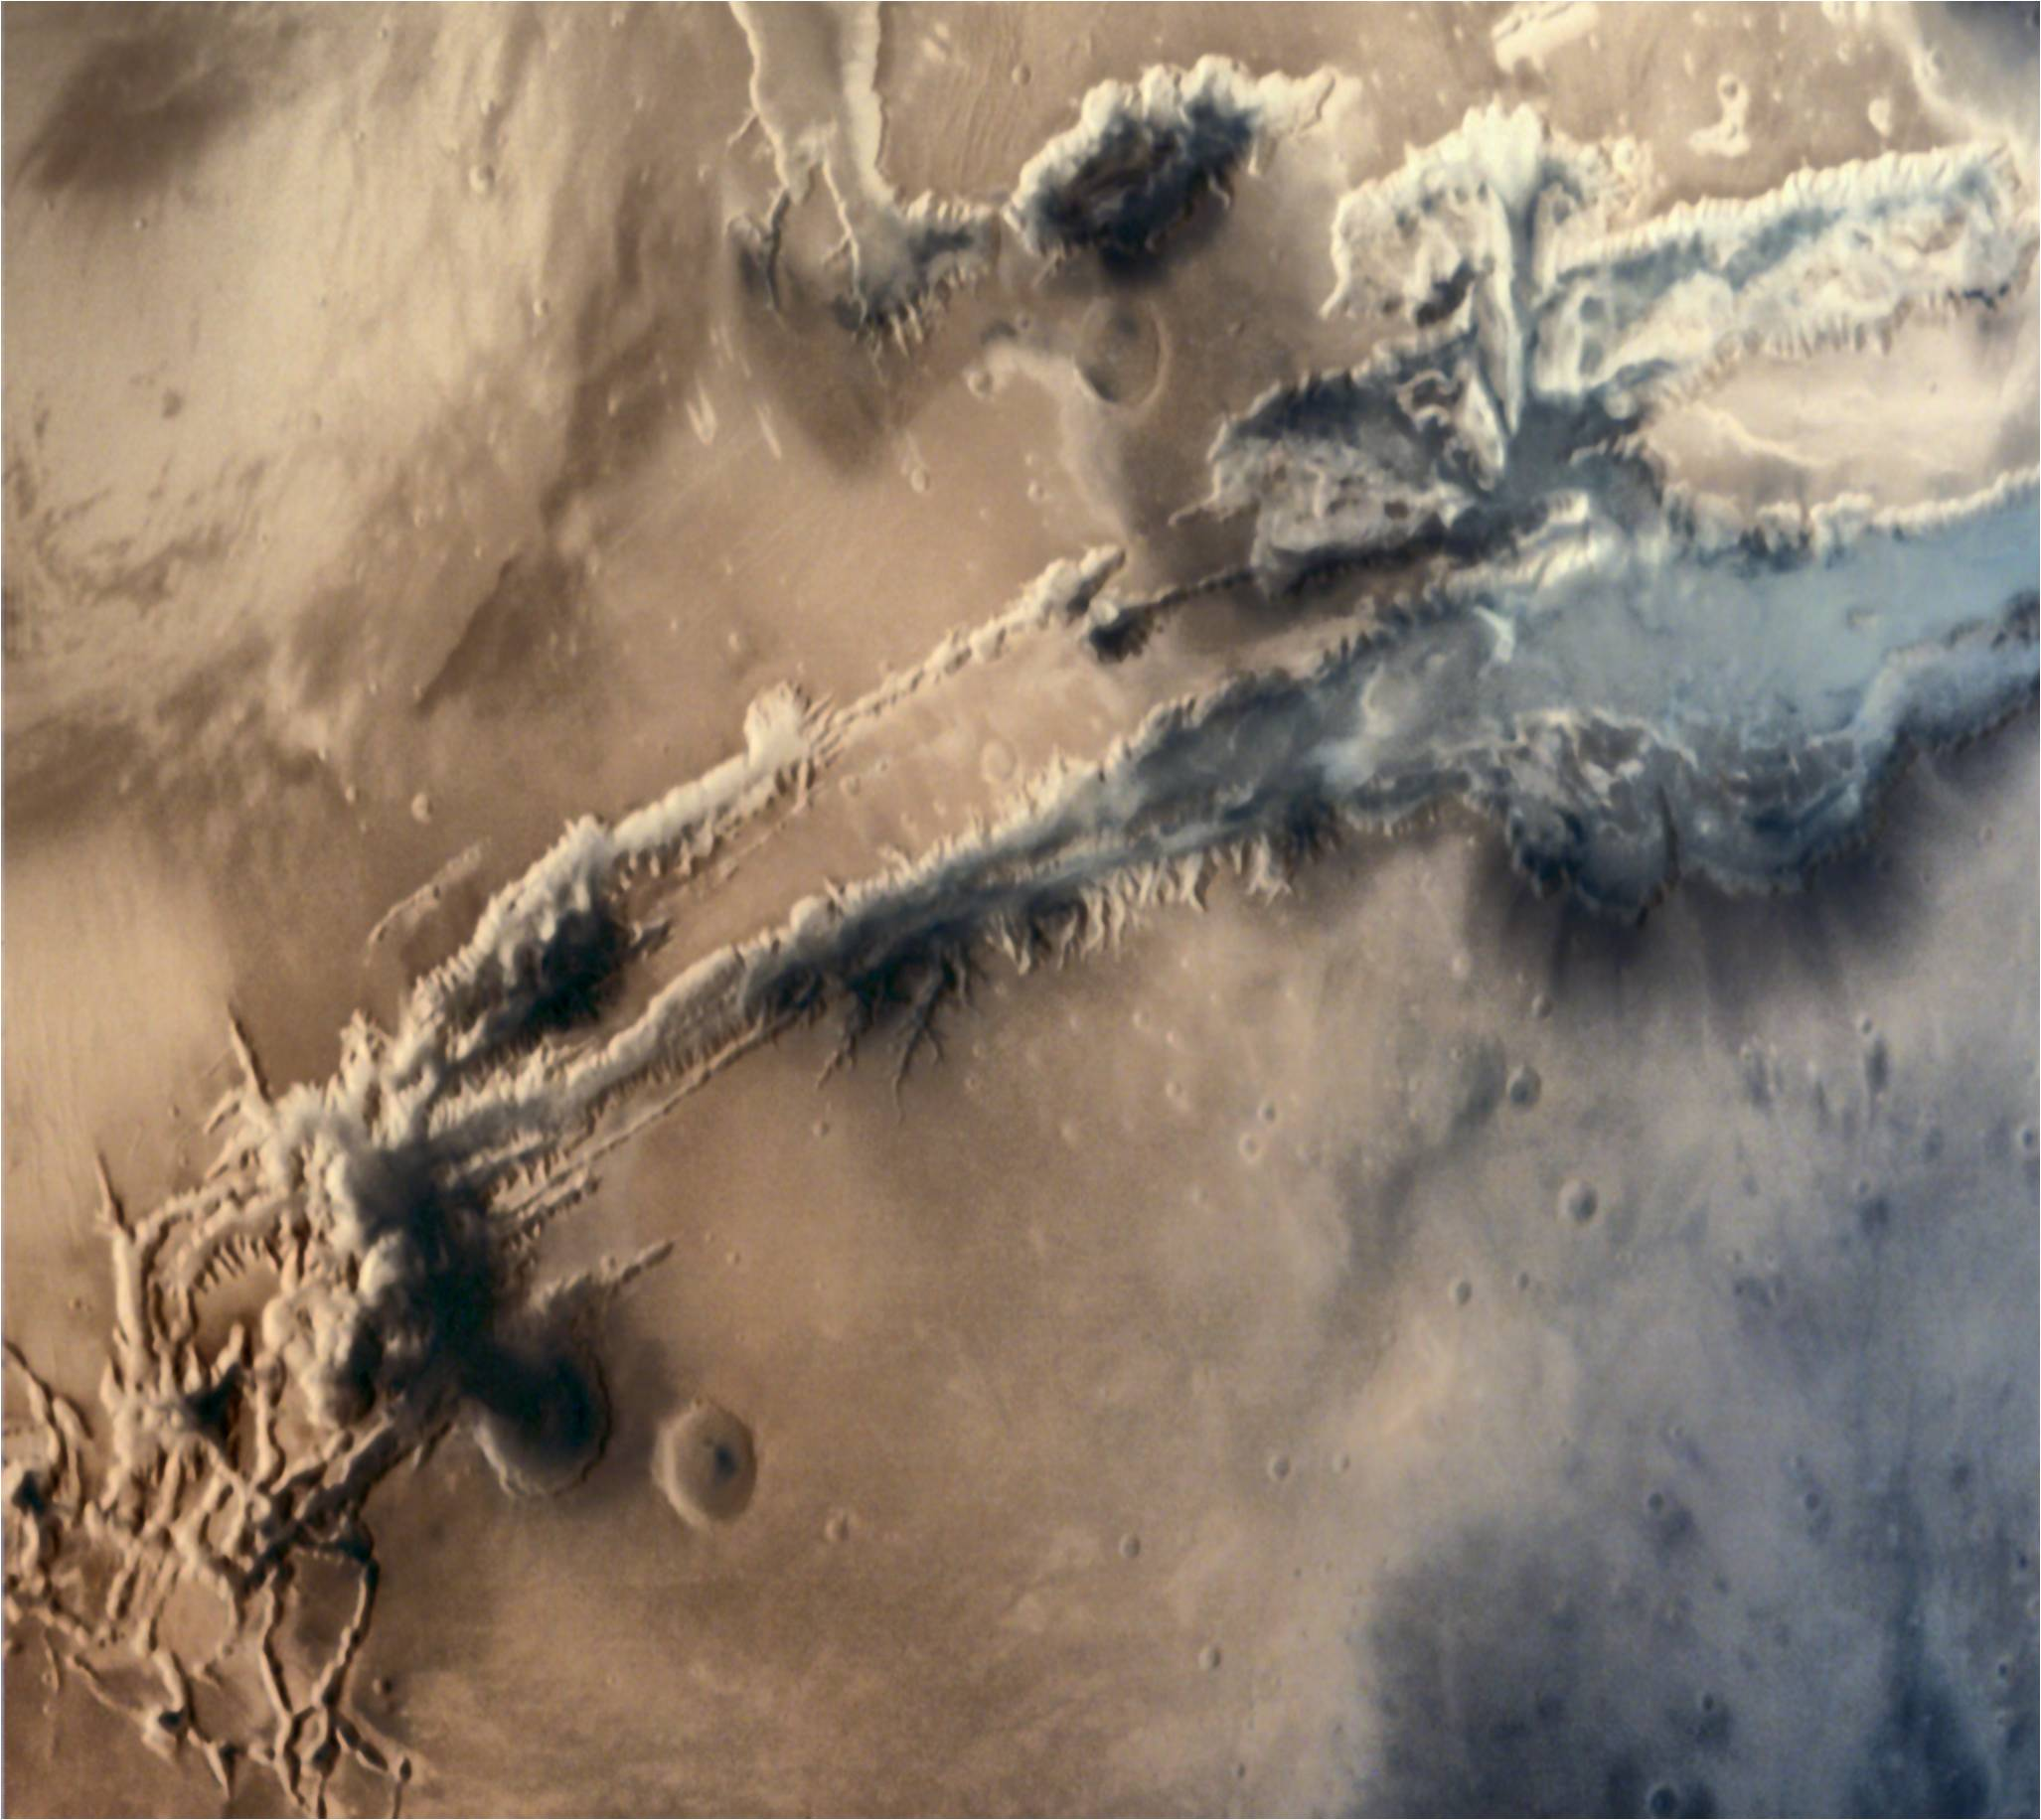 Did India capture volcanic activity or a nuclear explosion on Mars?